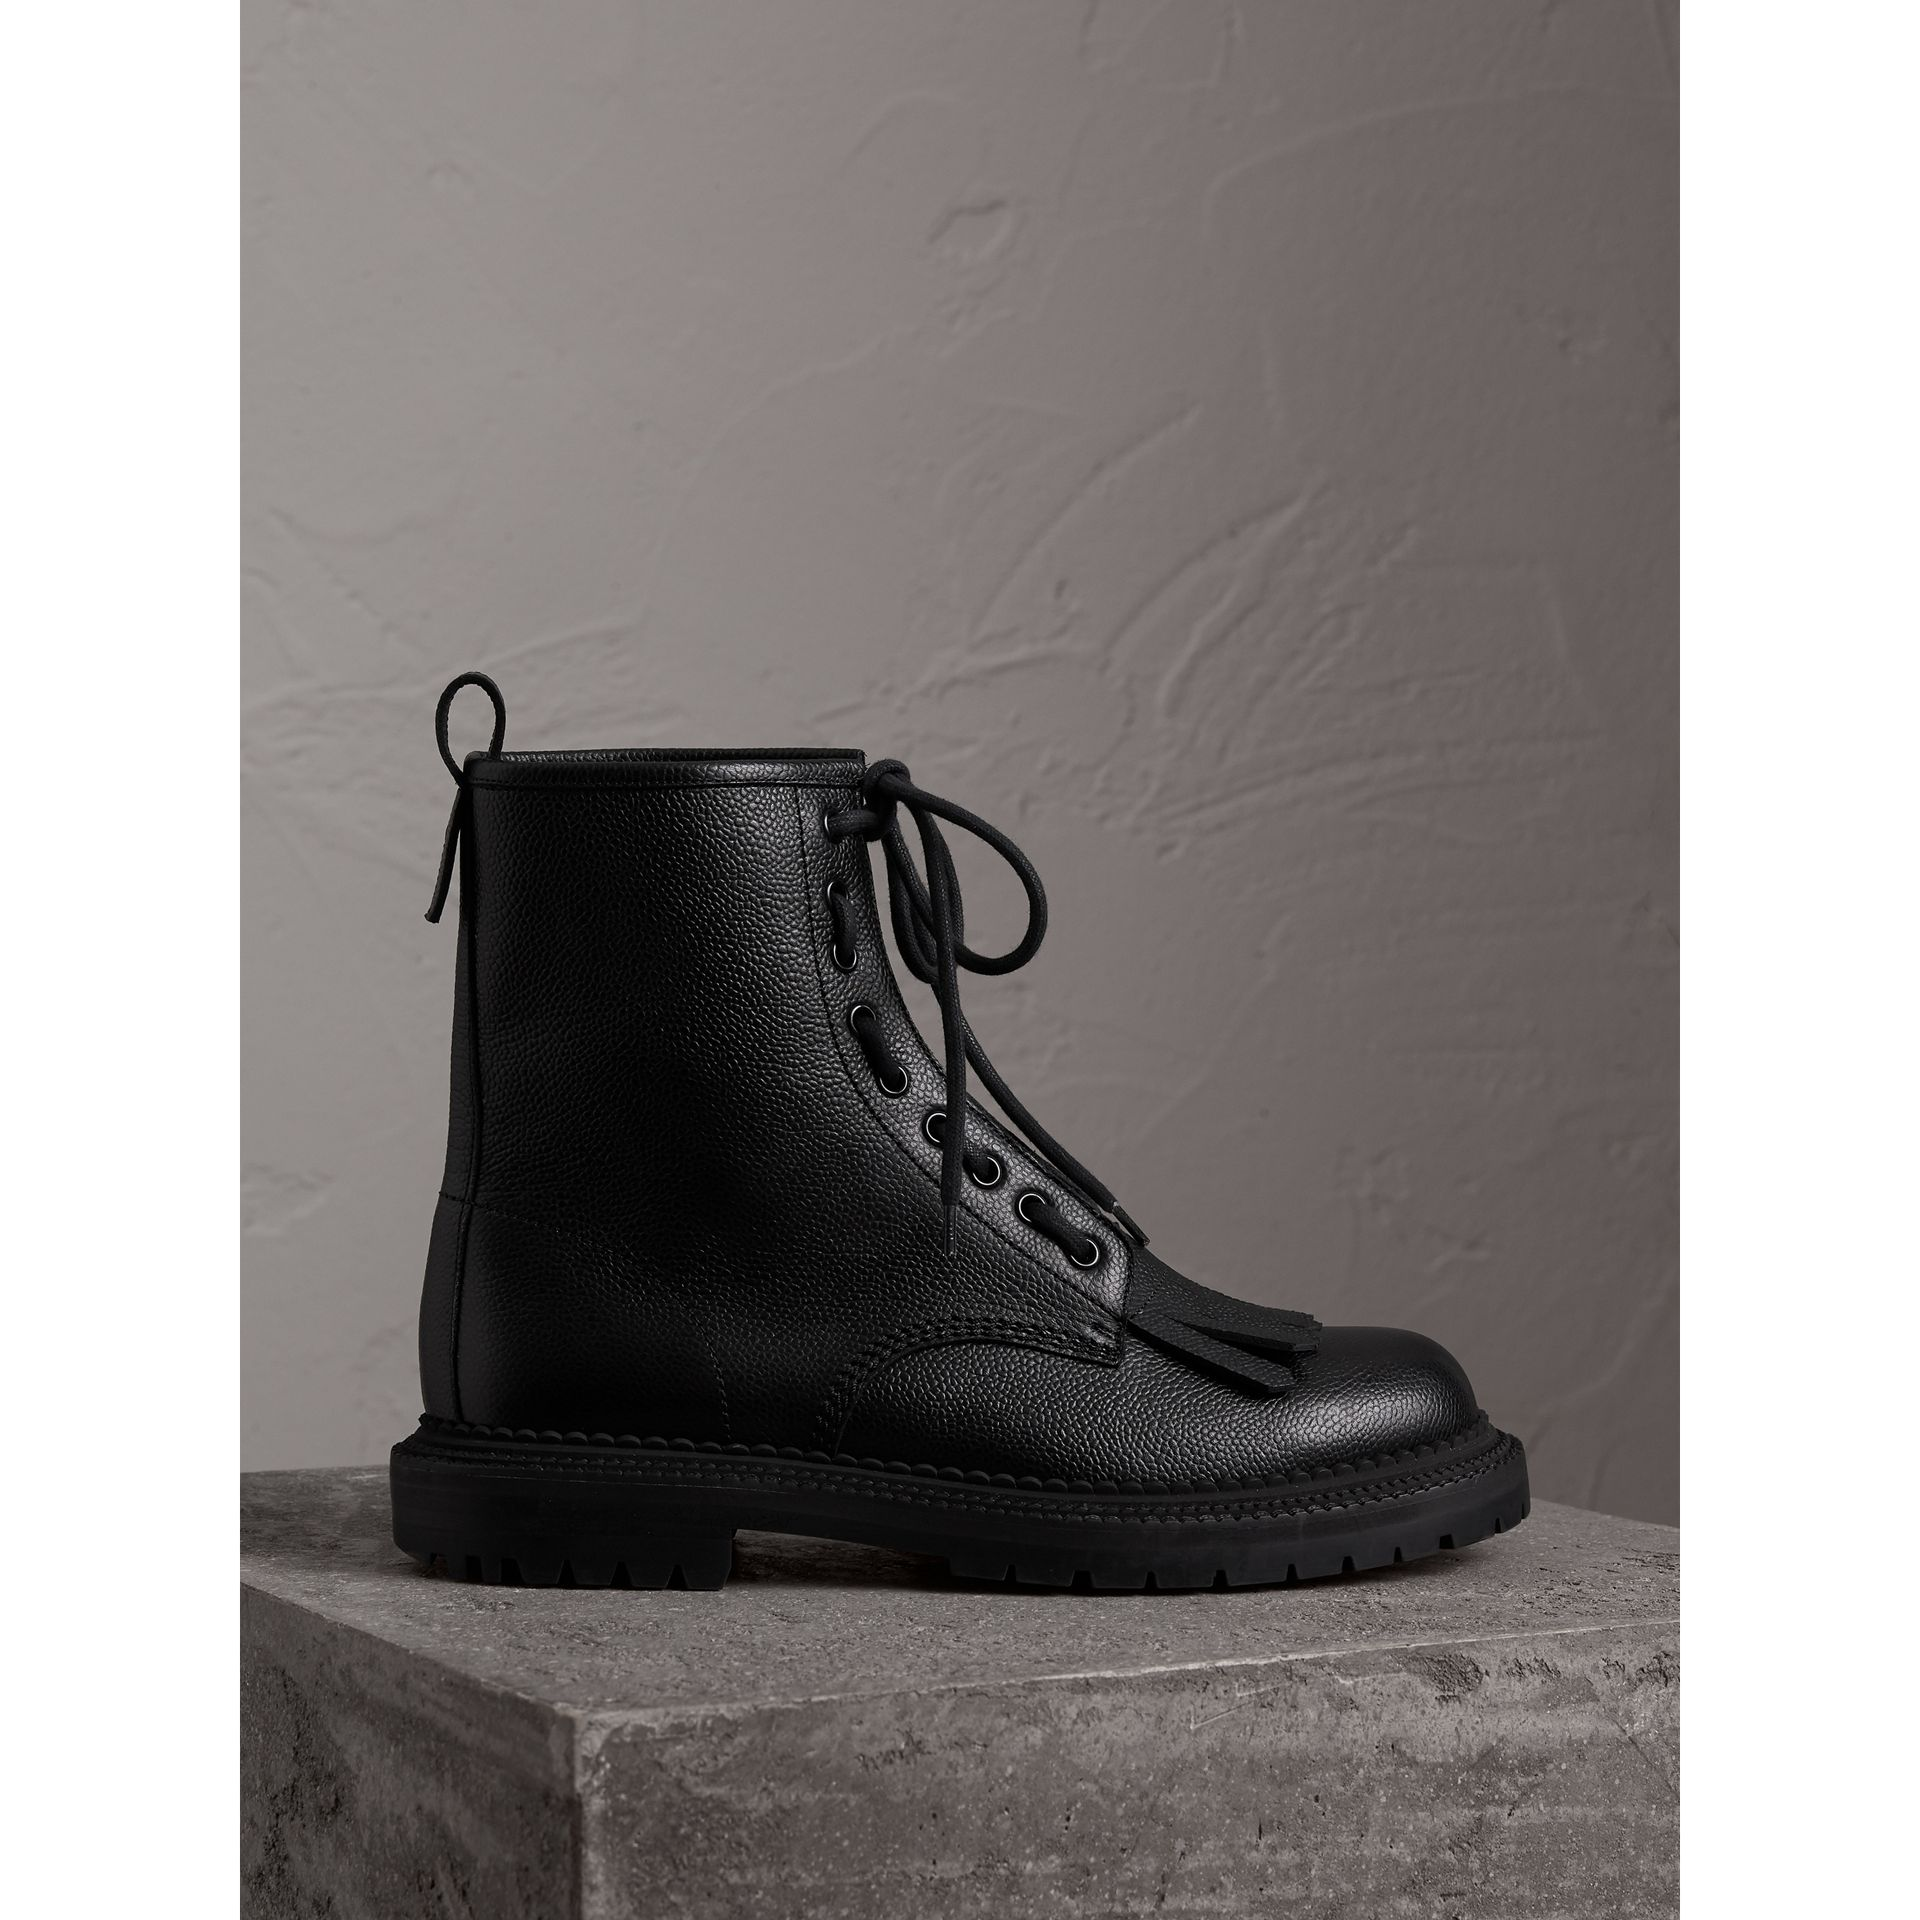 Burberry Black Fringe Detail Grainy Leather Zip-front Boots